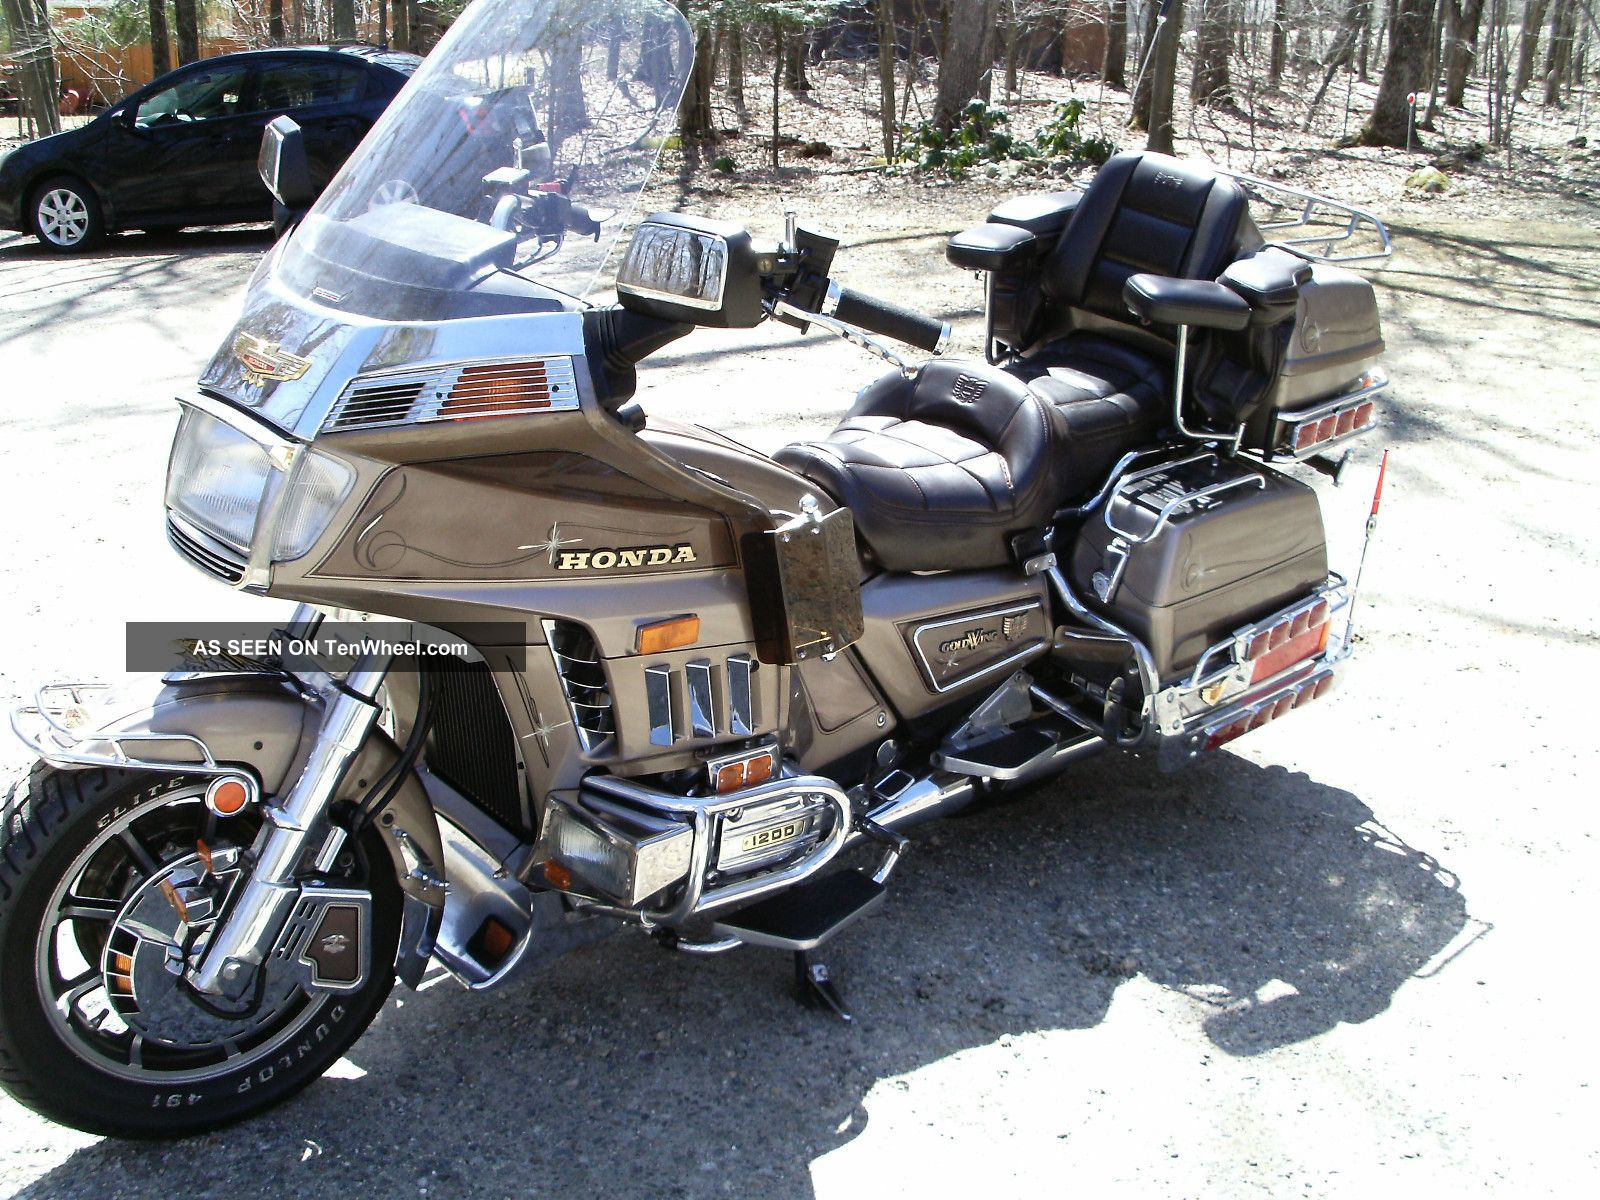 Wiring diagram as well 1986 honda goldwing aspencade on wiring honda v65 engine on wiring diagram as well 1986 honda goldwing aspencade on publicscrutiny Image collections